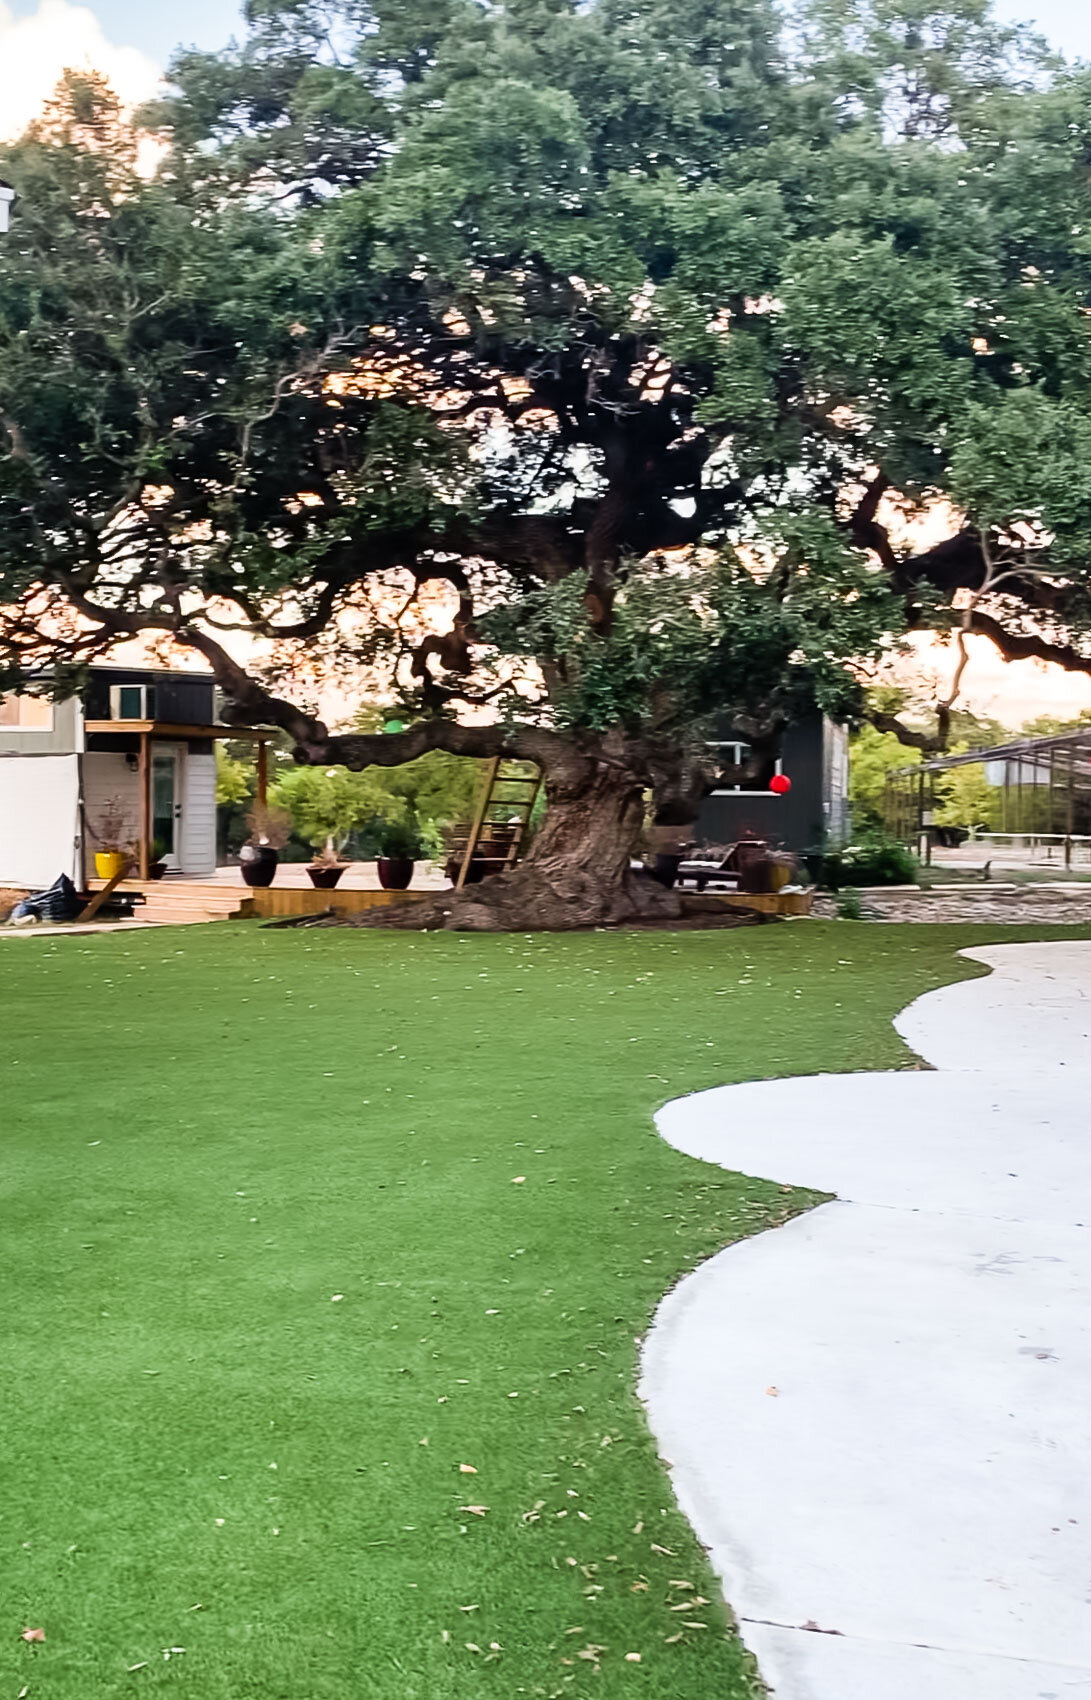 There's a sneak peek of the two tiny houses anchored by a Live Oak tree estimated at about 1,300 years old.